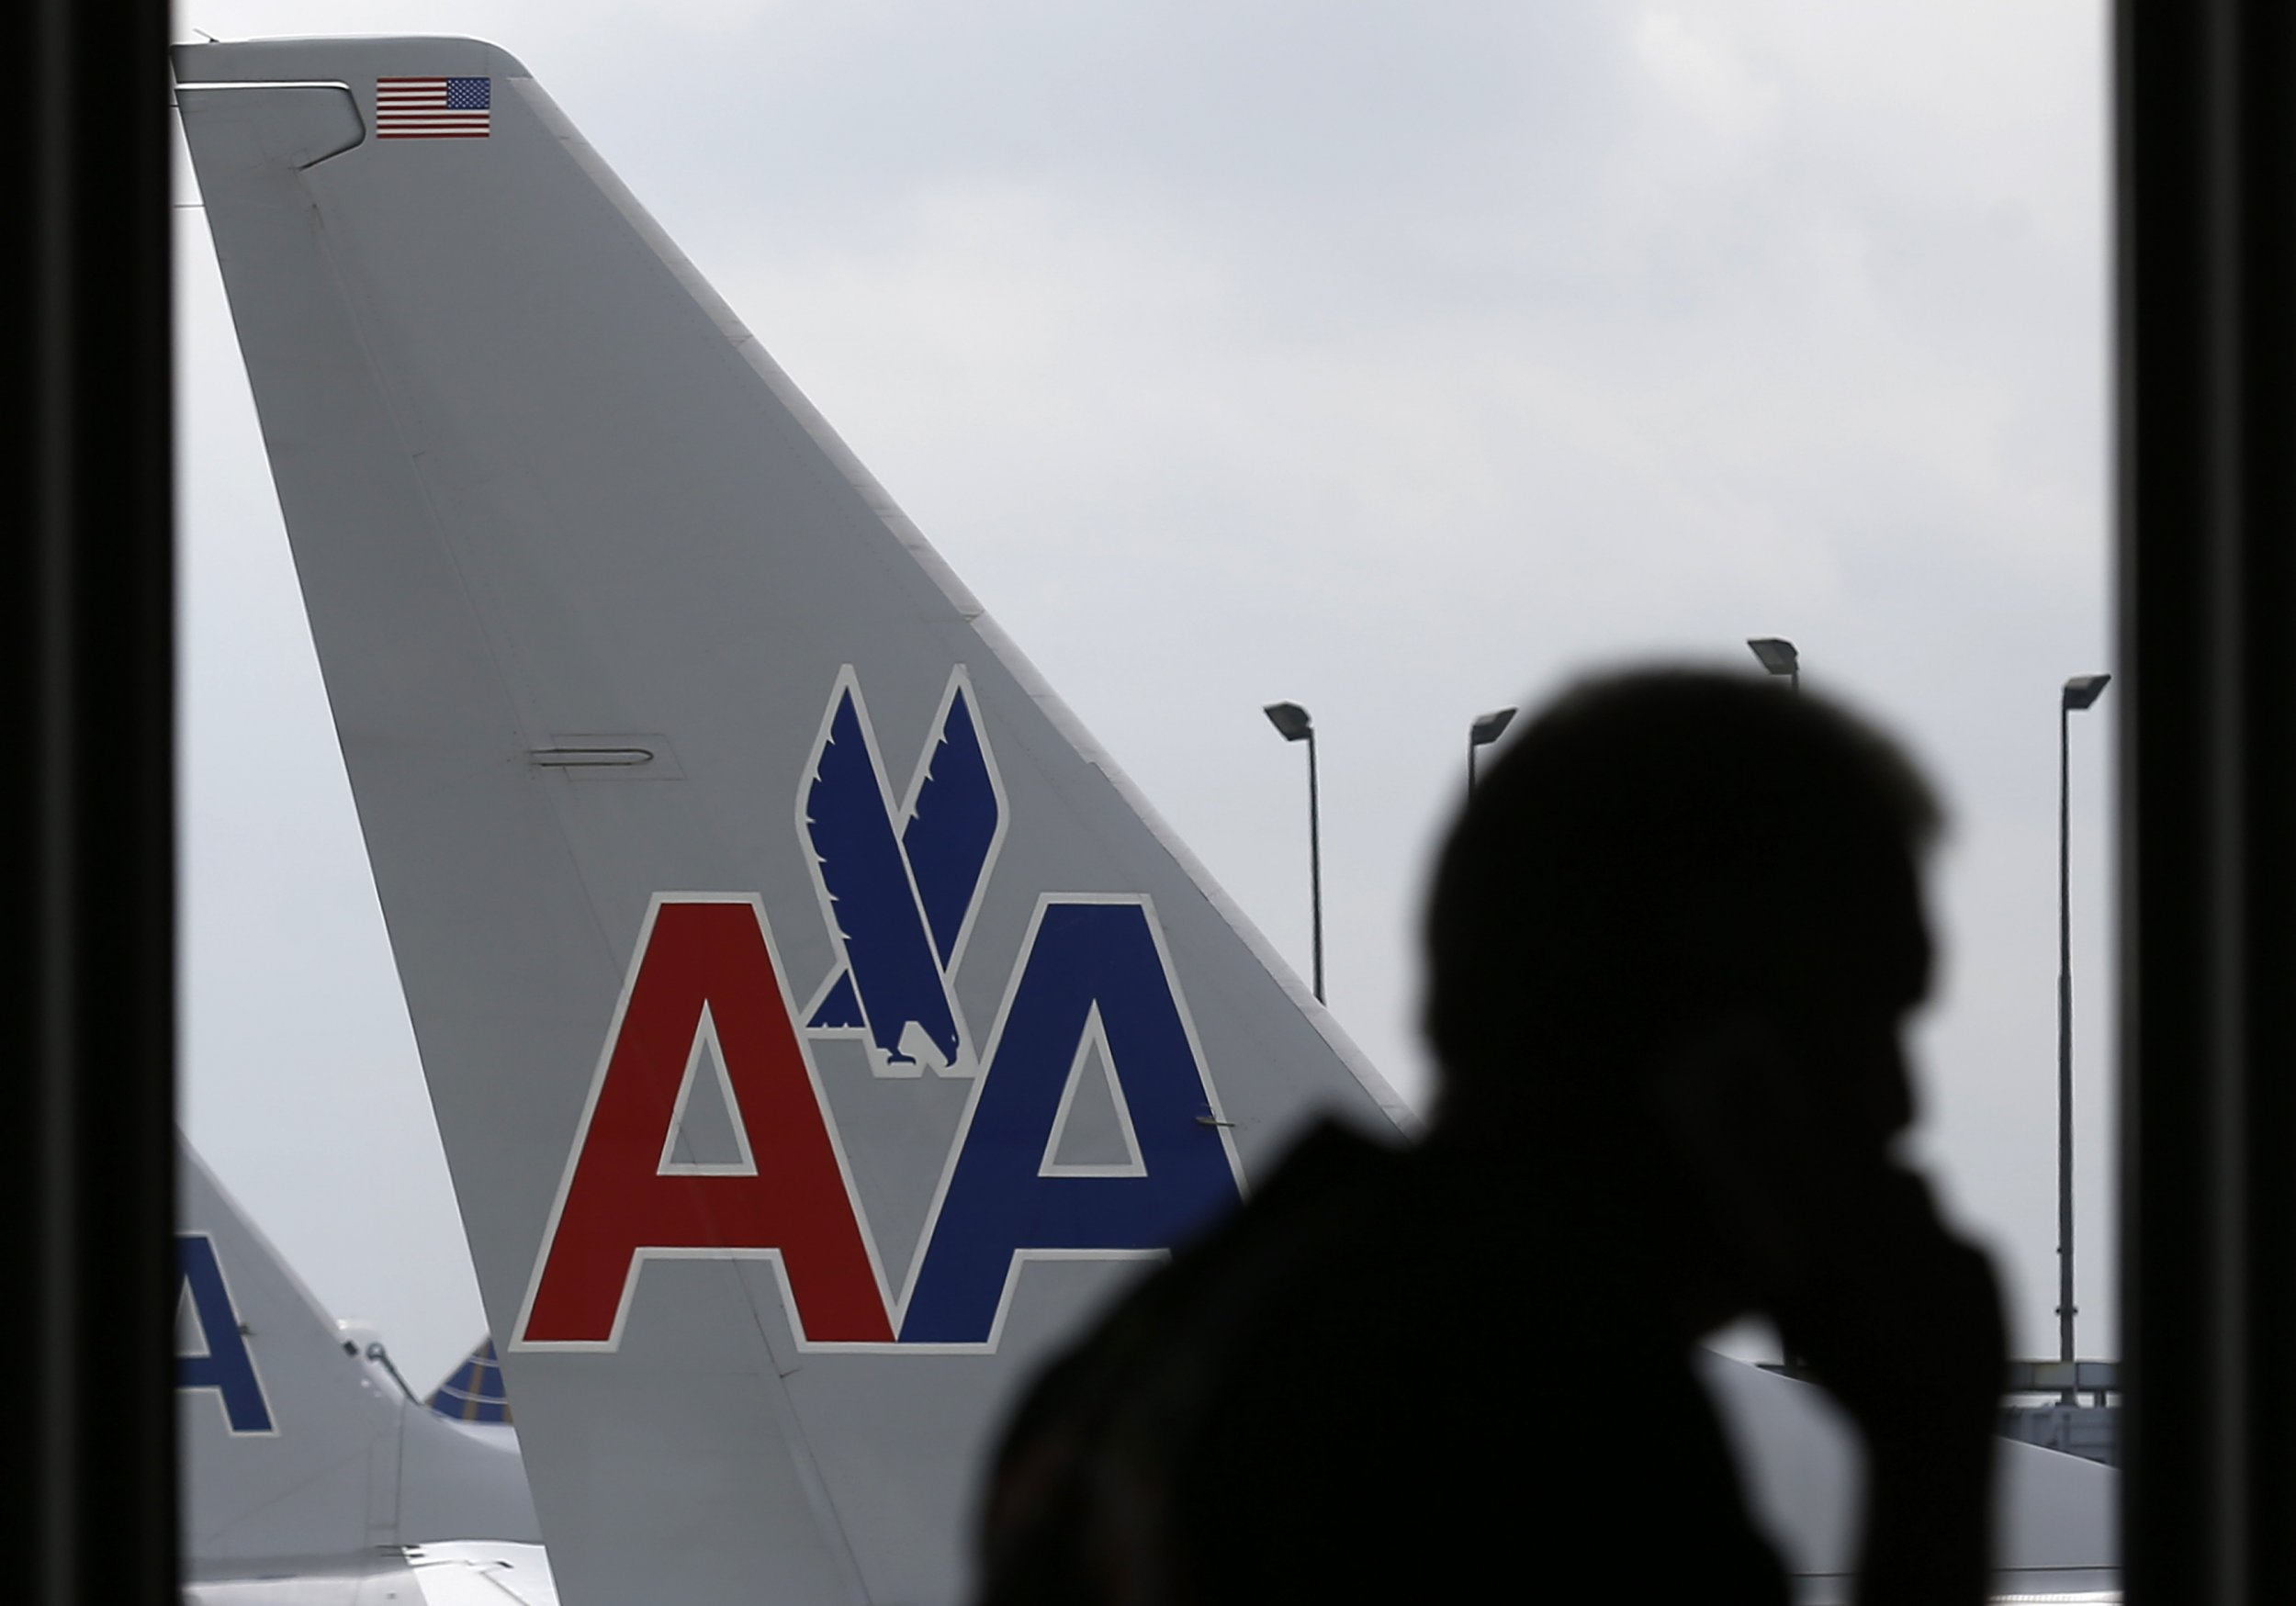 American Airlines Working To Resume Flights After Technical Difficulties